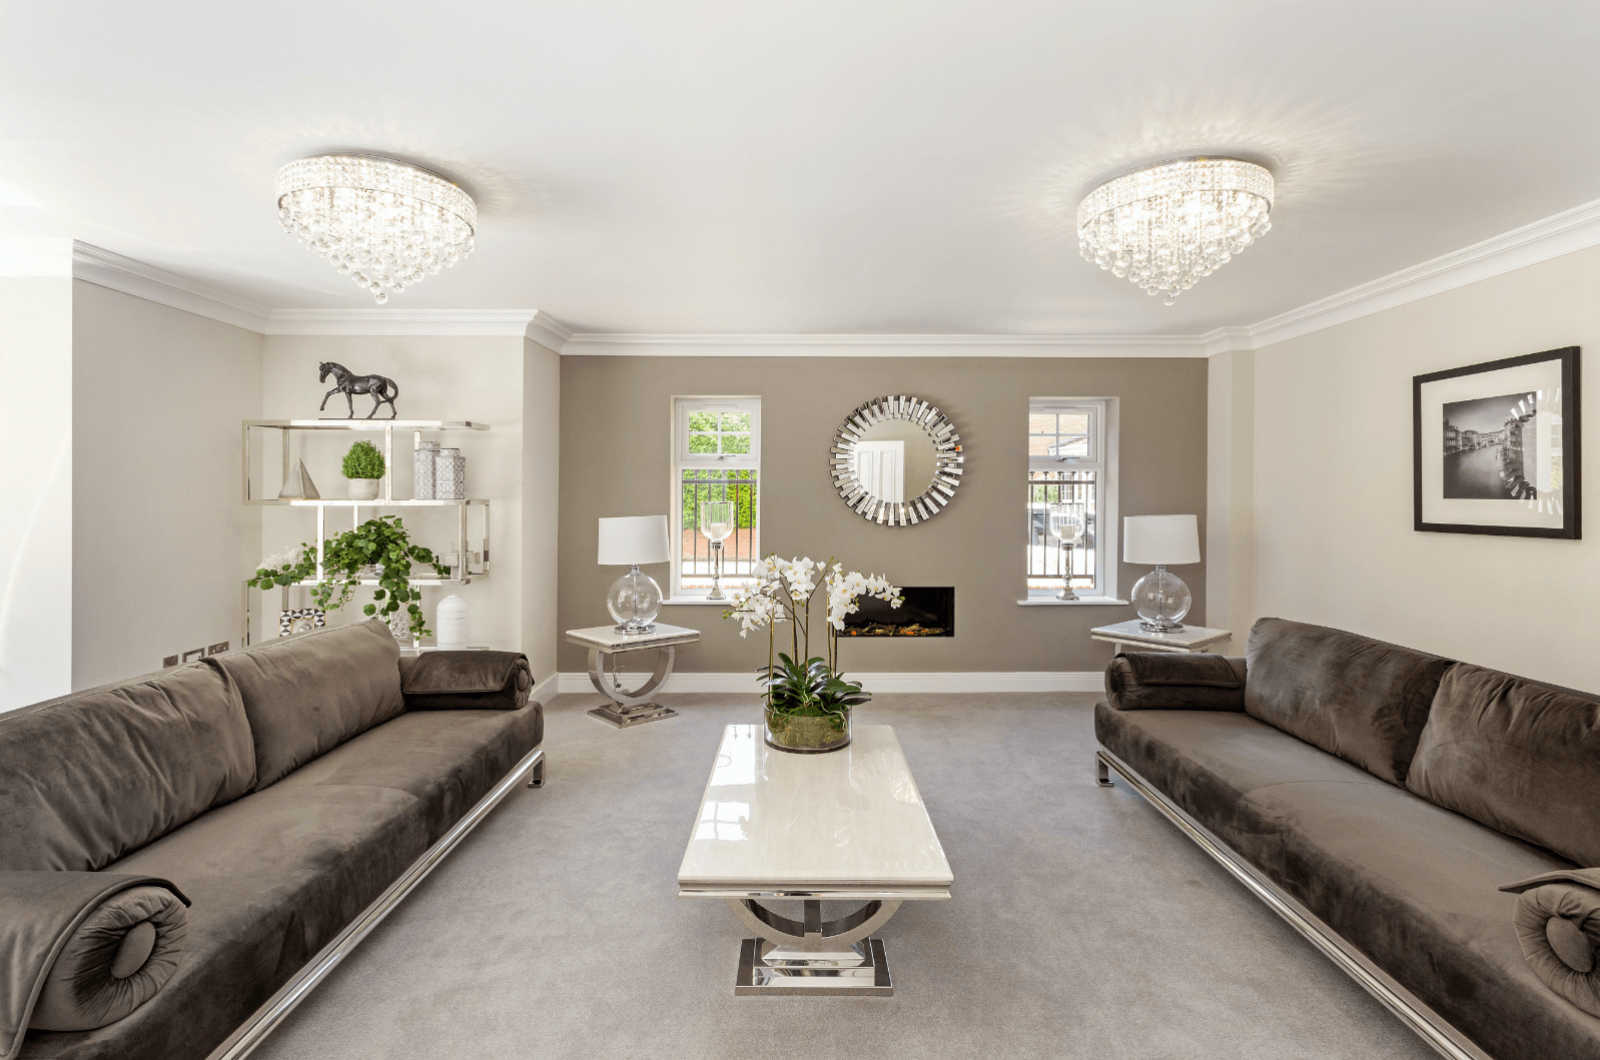 Alderbrook Road project modern grey living room interior